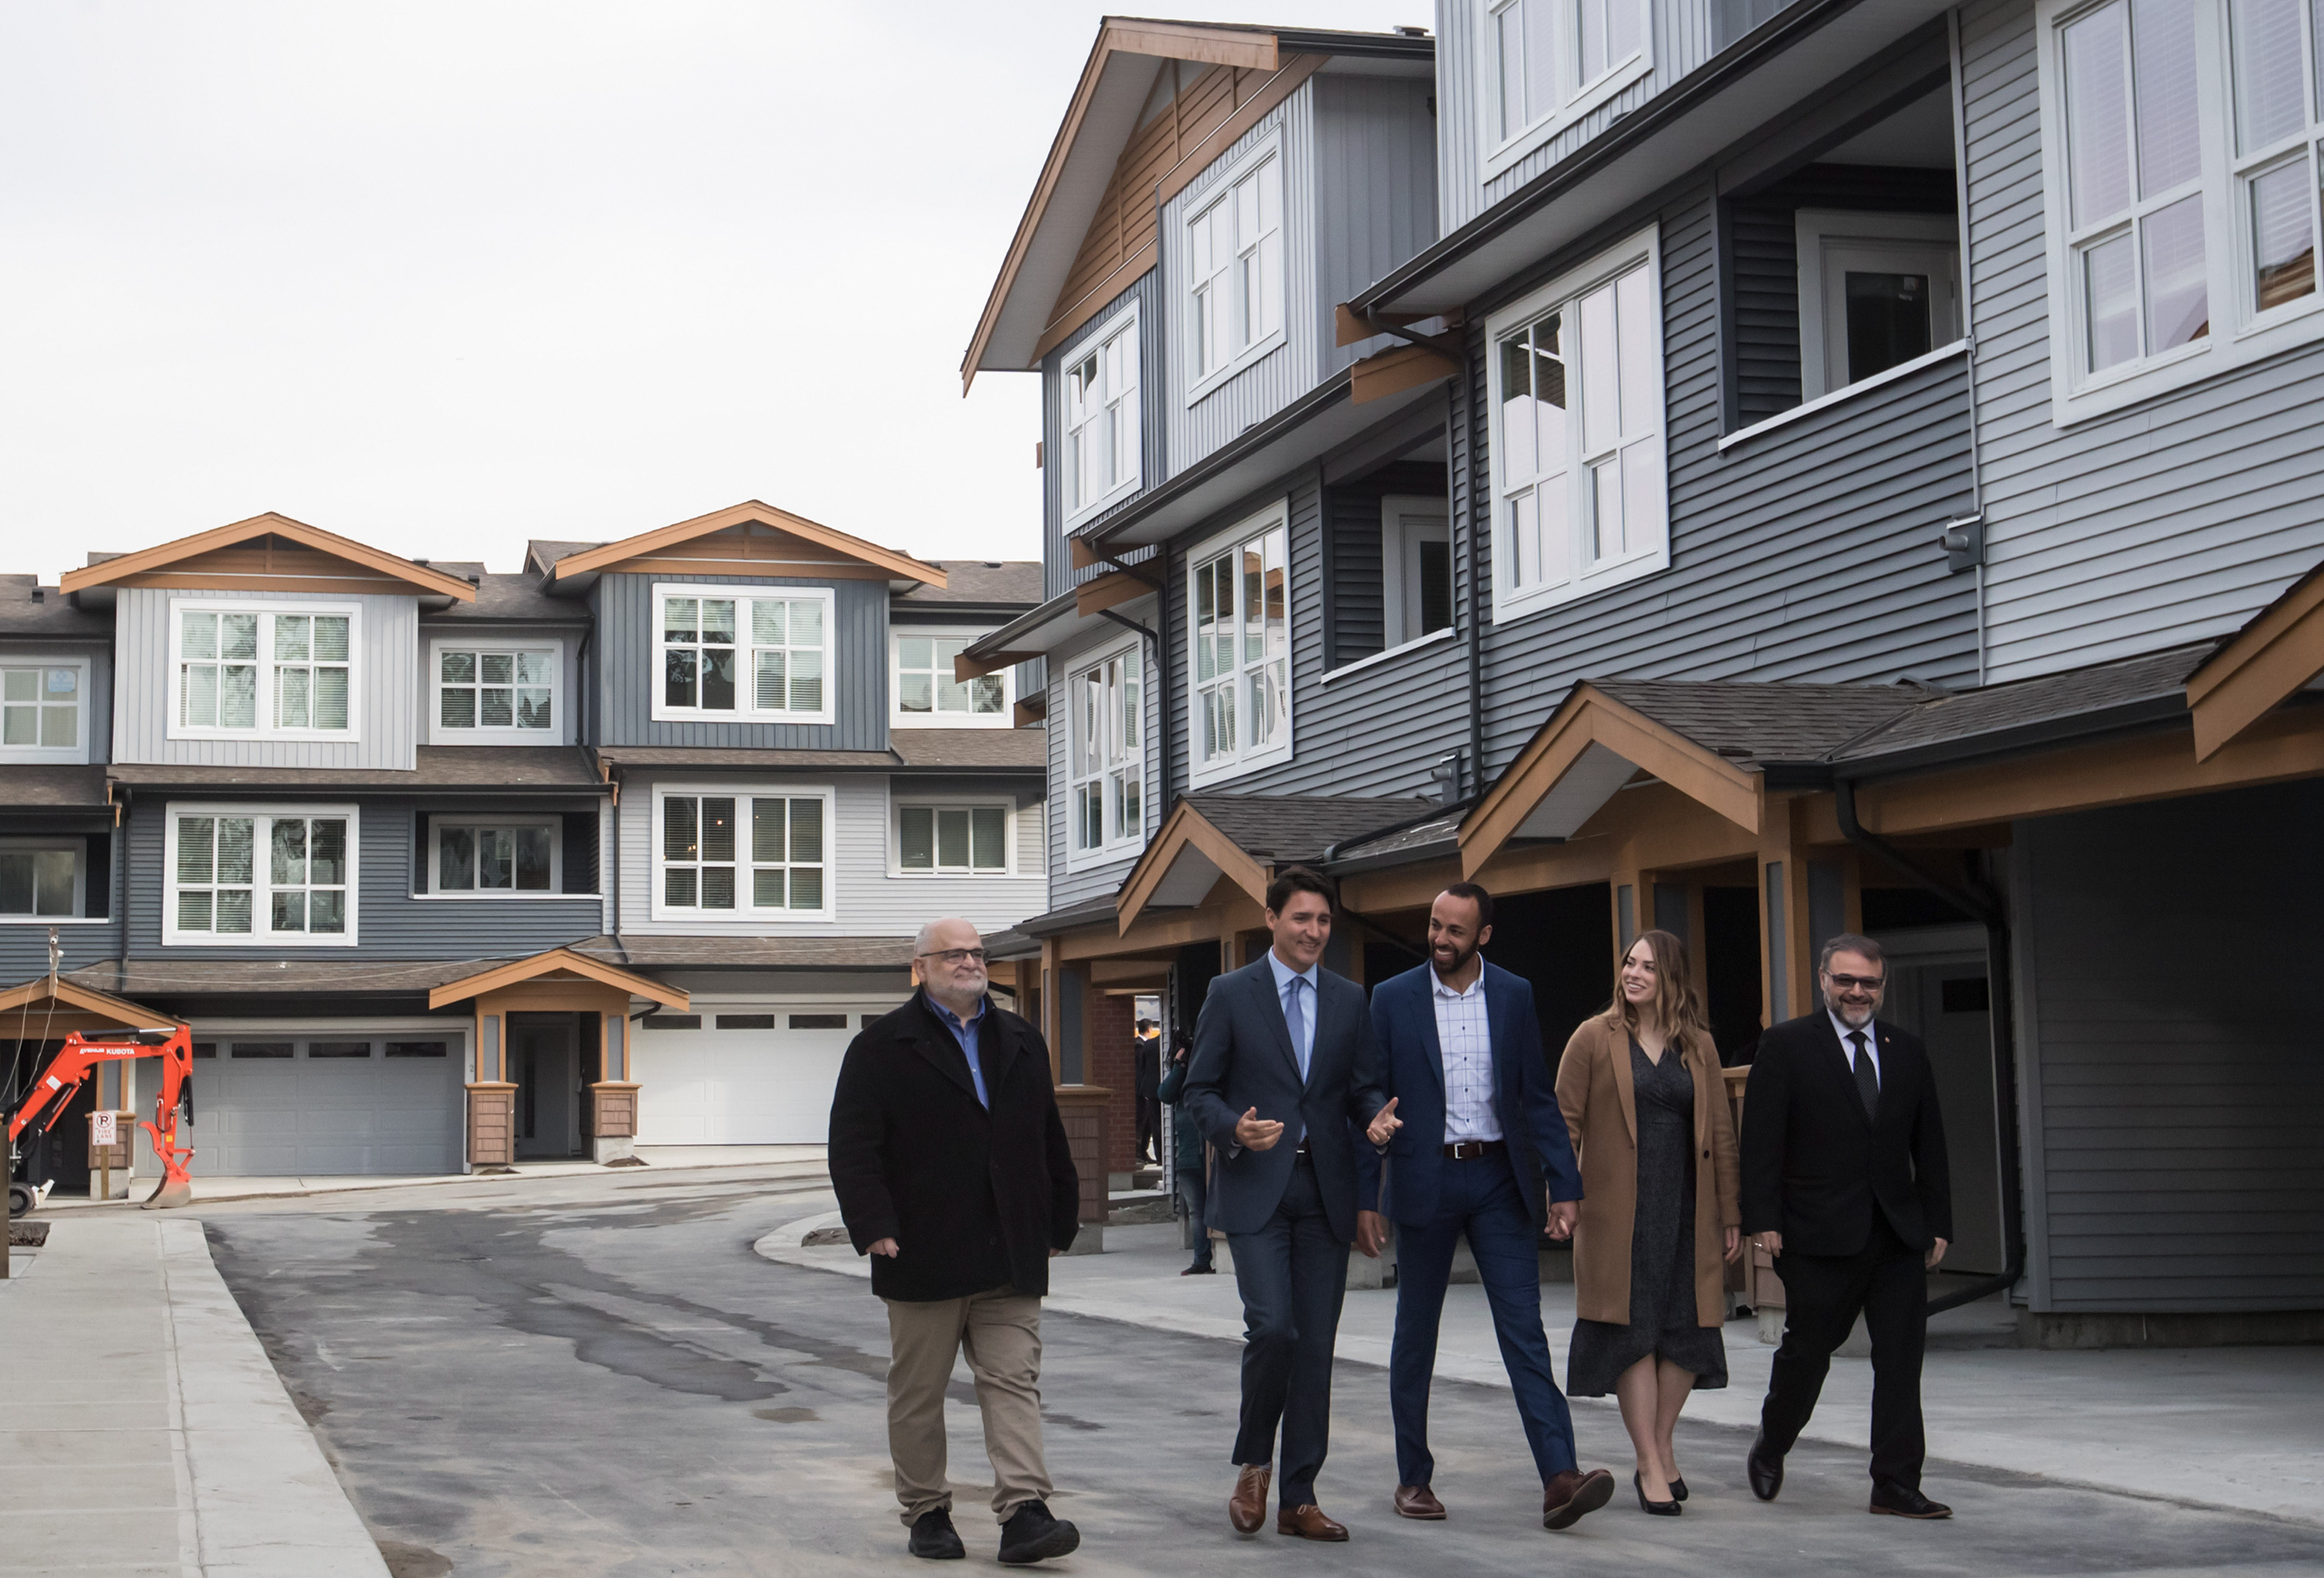 Canada's real estate market: Why house prices are unlikely